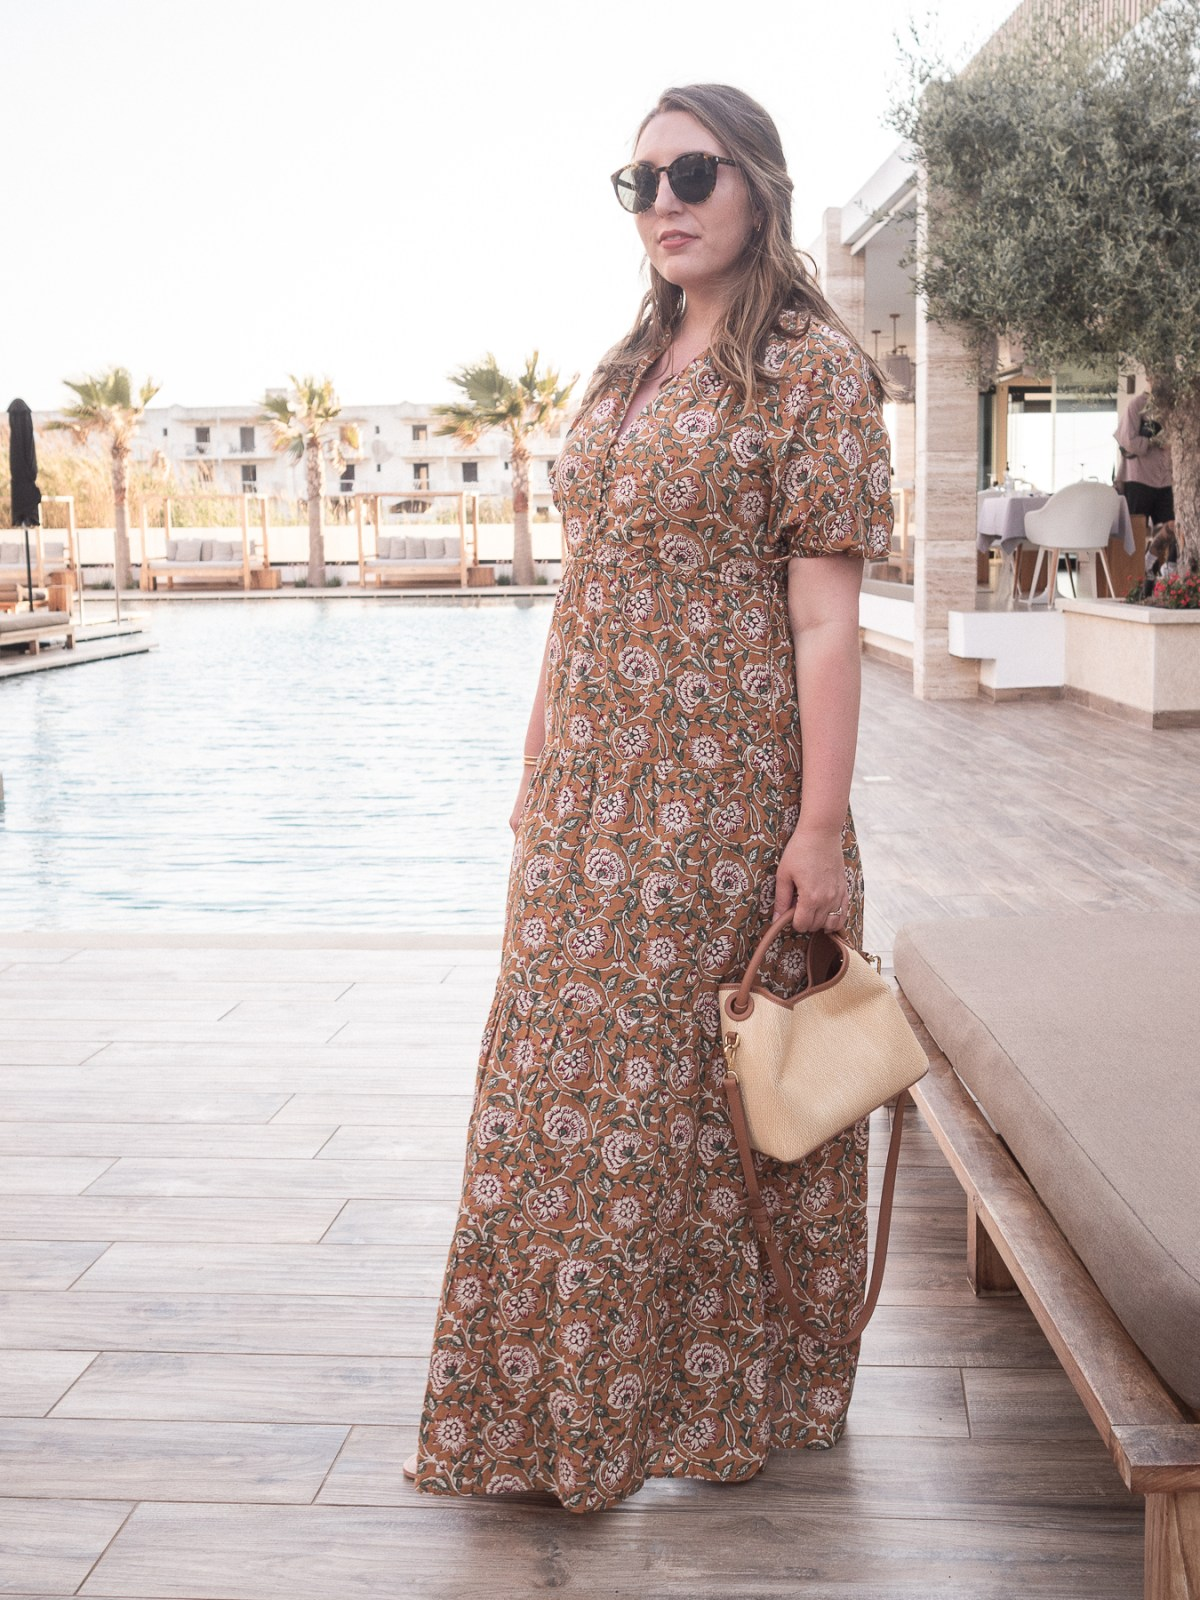 My Pregnancy Capsule Wardrobe   featuring a floaty yellow printed cotton maxi dress by Sezane, Elleme Baozi straw and leather bag   Summer pregnancy outfit   W&S